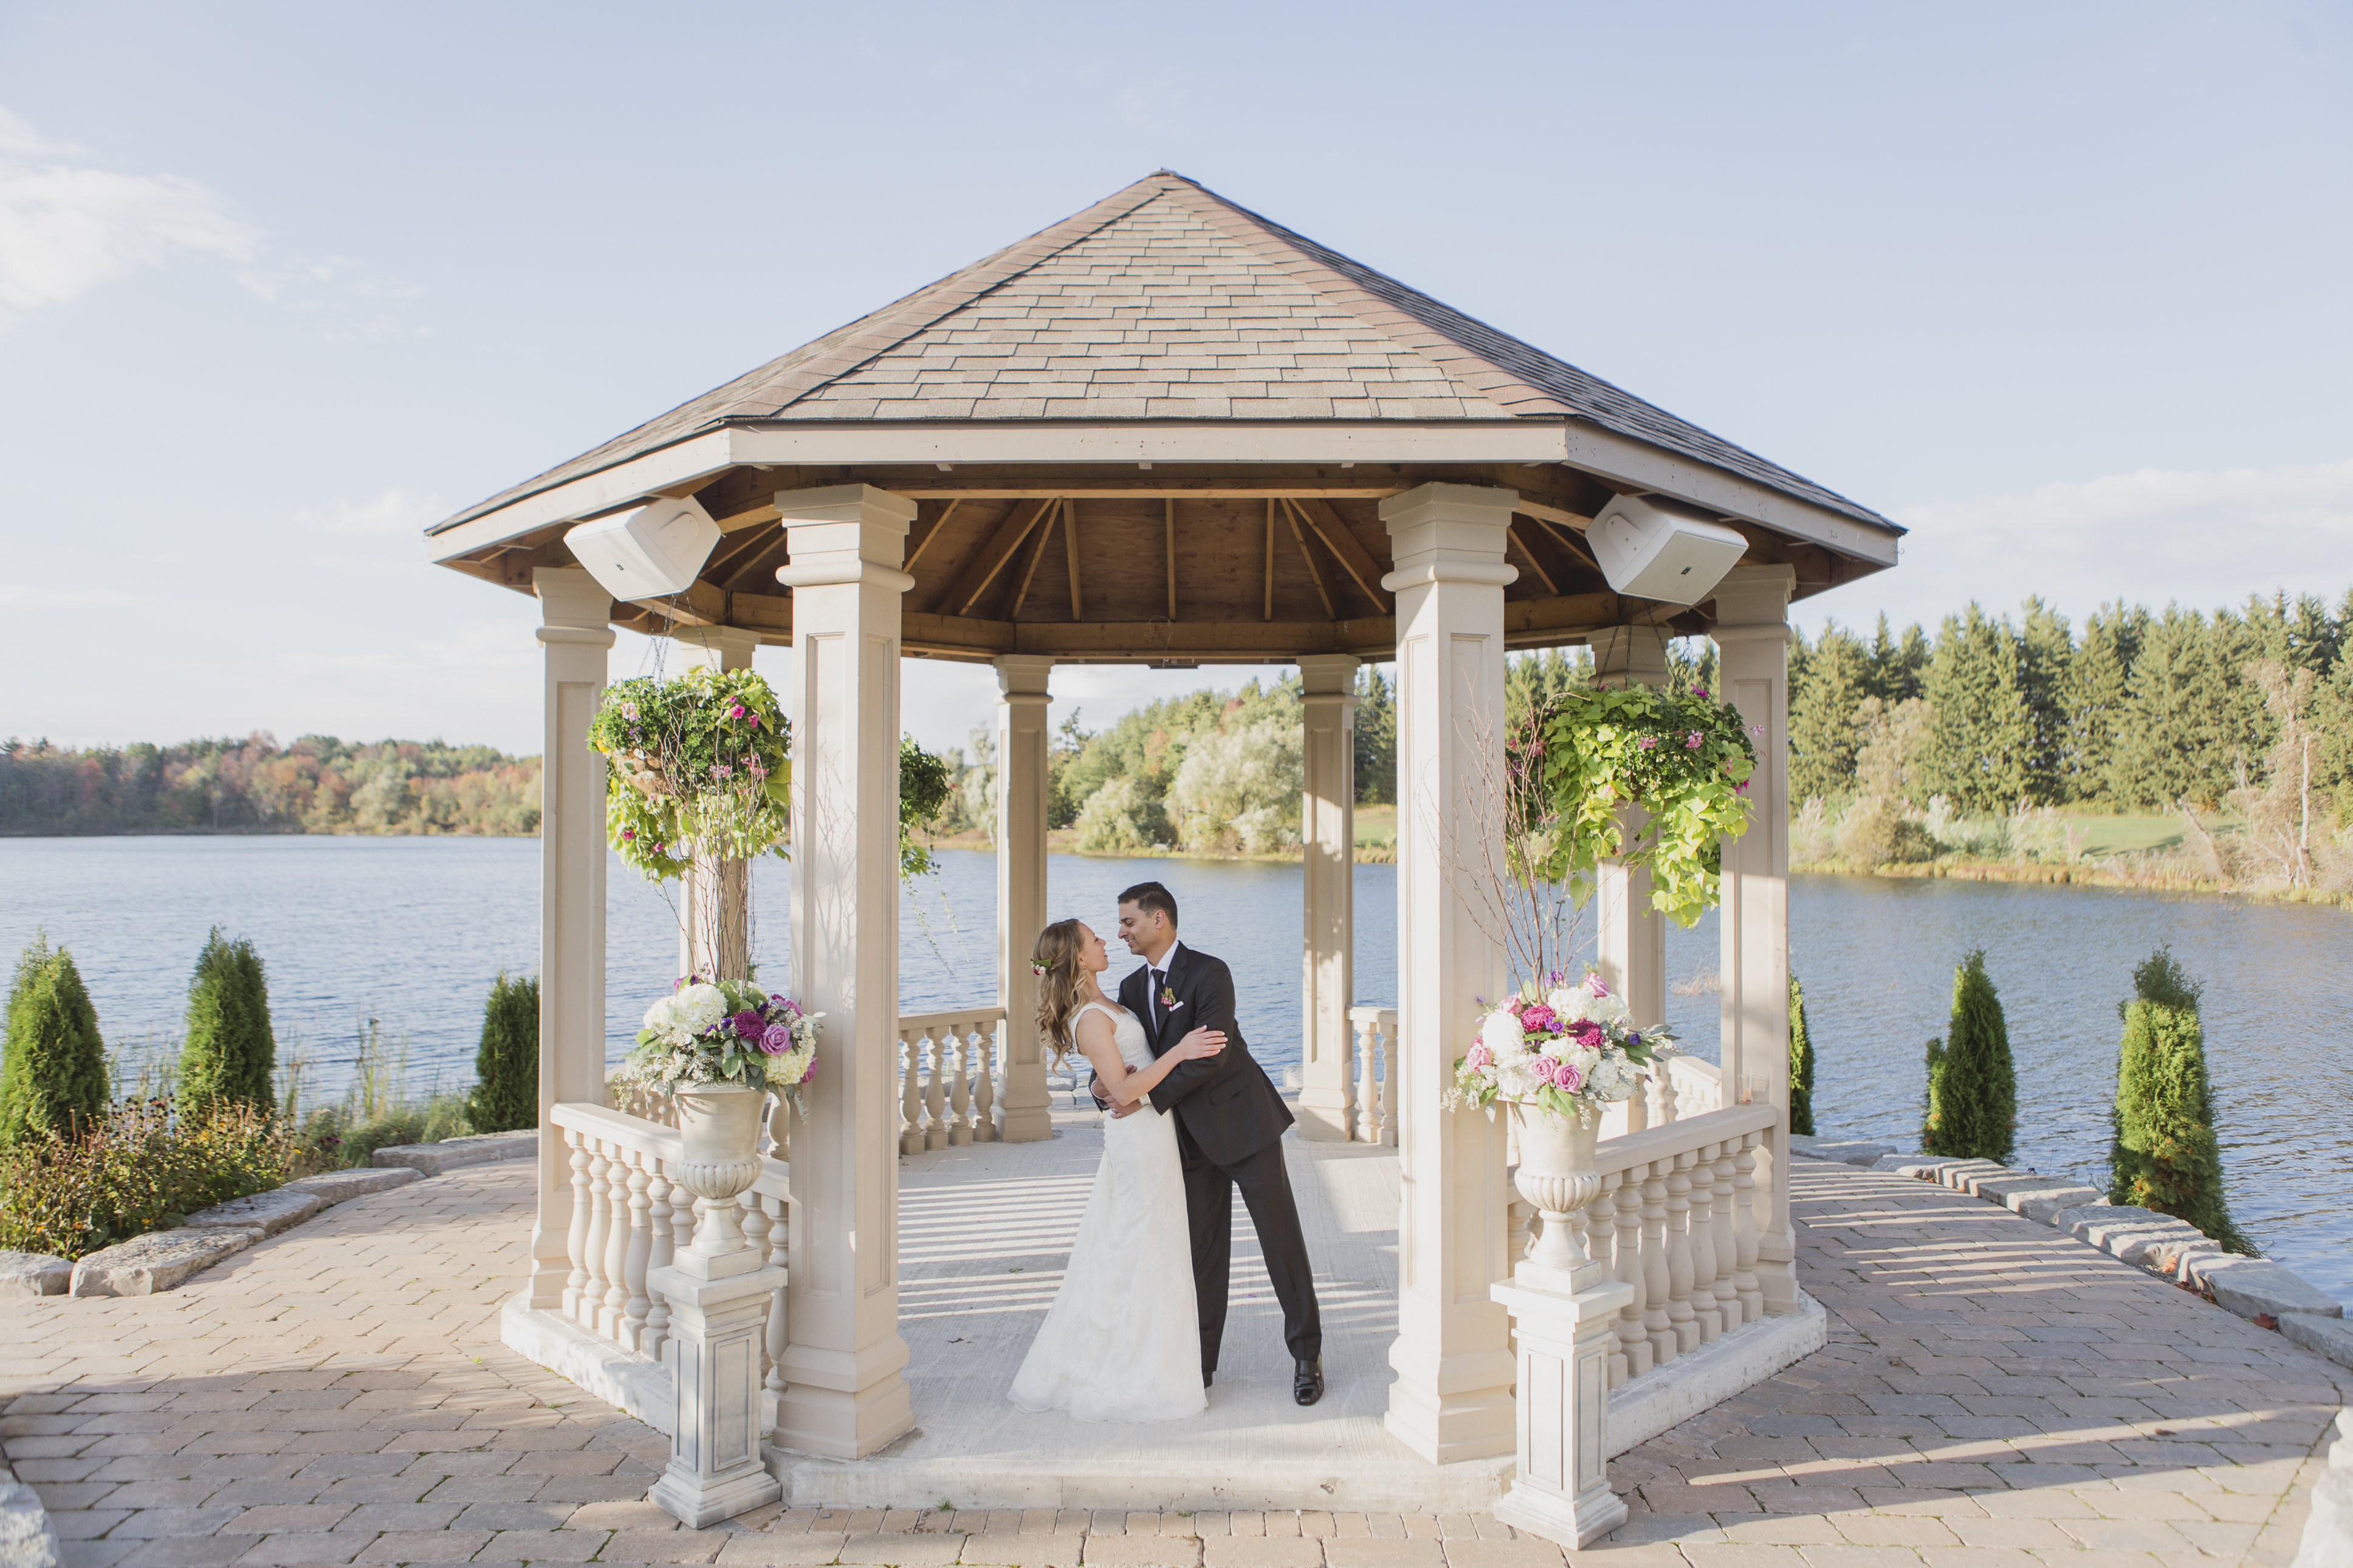 Fall wedding photos under a gazebo in Ontario. See more at Rebecca Chan Weddings and Events http://www.rebeccachan.ca